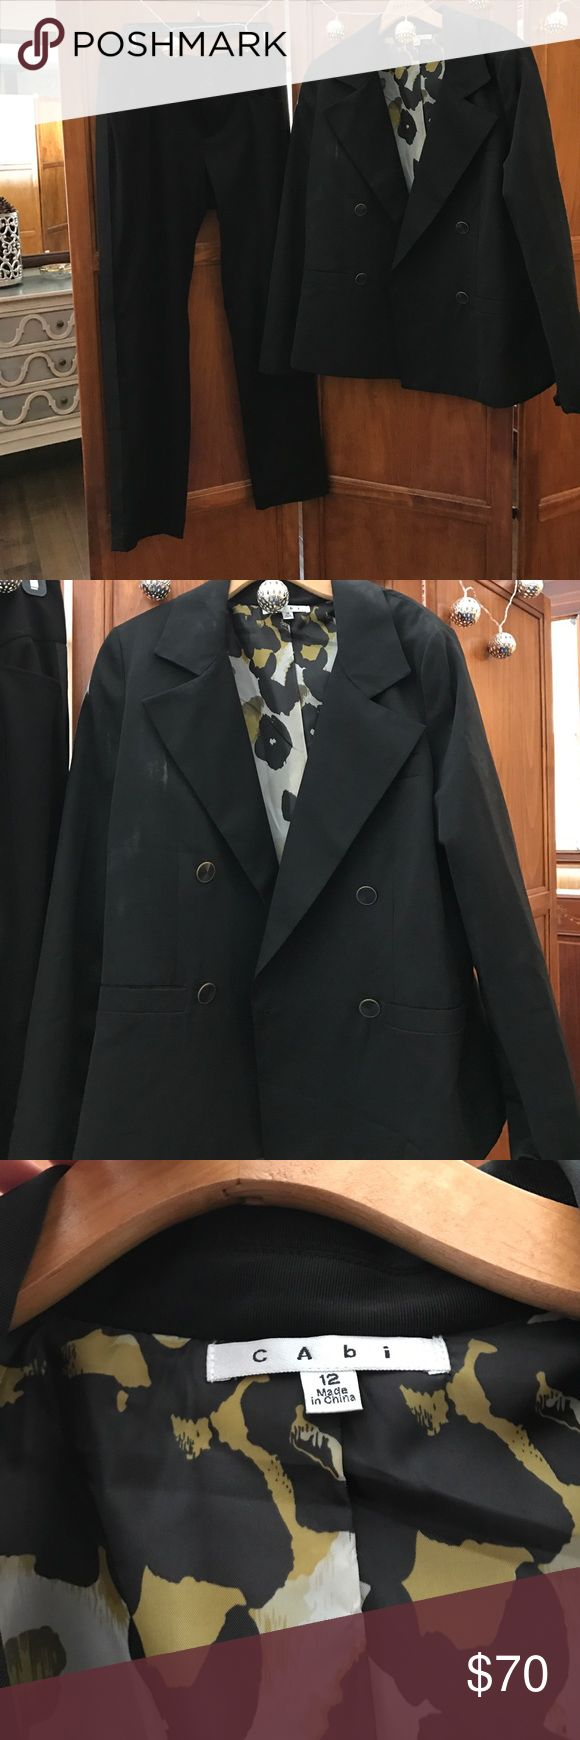 CABI black suit jacket 12/ pant 10 Beautiful 2 piece suit by CABI. Blazer is a double breasted look with a shine to fabric. Pants are slim tuxedo pants with black tux stripe down side. Jacket worn one time, pants never worn. CAbi Other